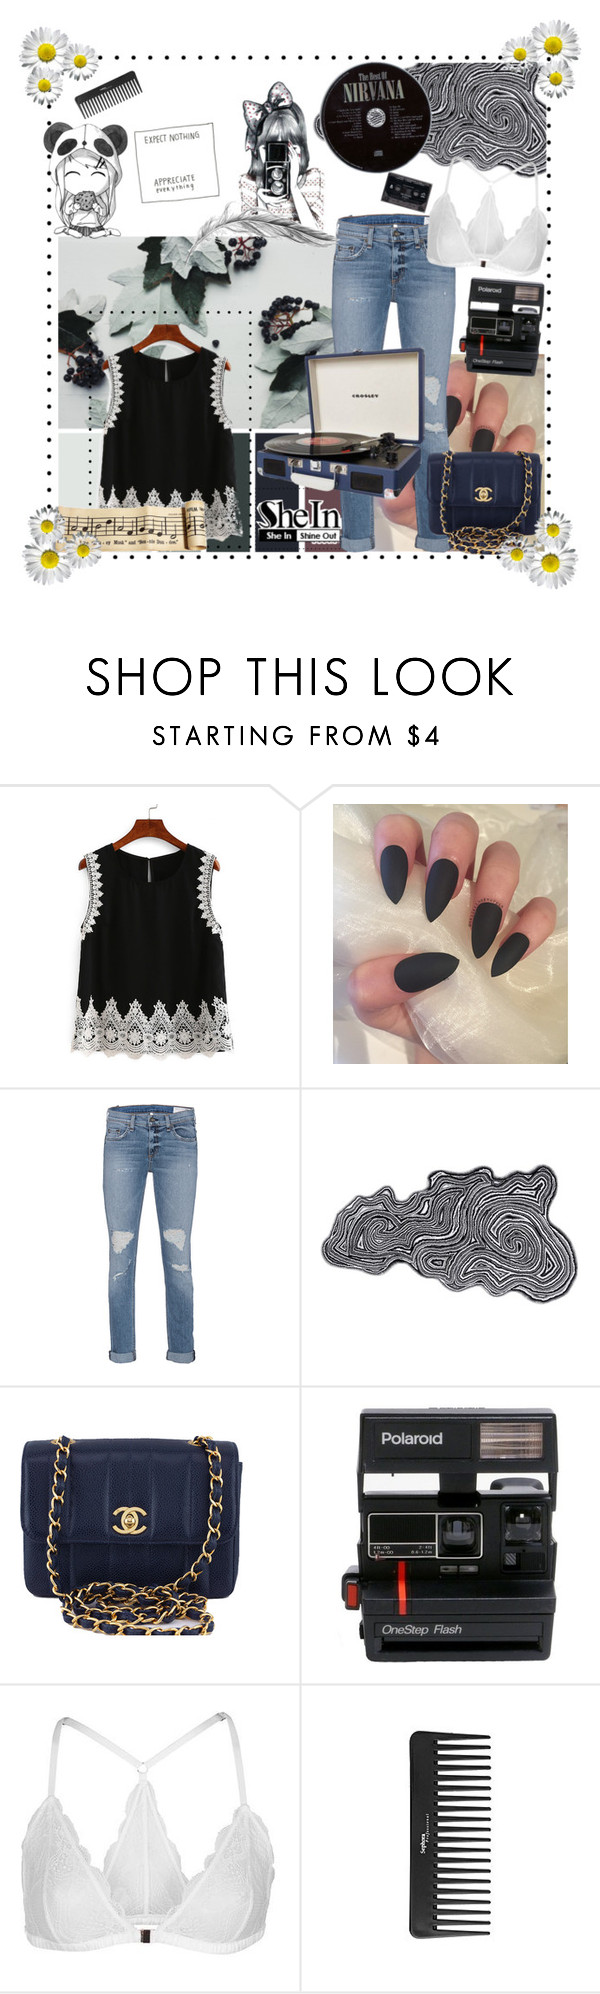 """""""Shein Lace Trimmed Keyhole Black Tank"""" by ac-awesome ❤ liked on Polyvore featuring rag & bone, Abyss & Habidecor, Chanel, Polaroid, Topshop, Sephora Collection and Dot & Bo"""